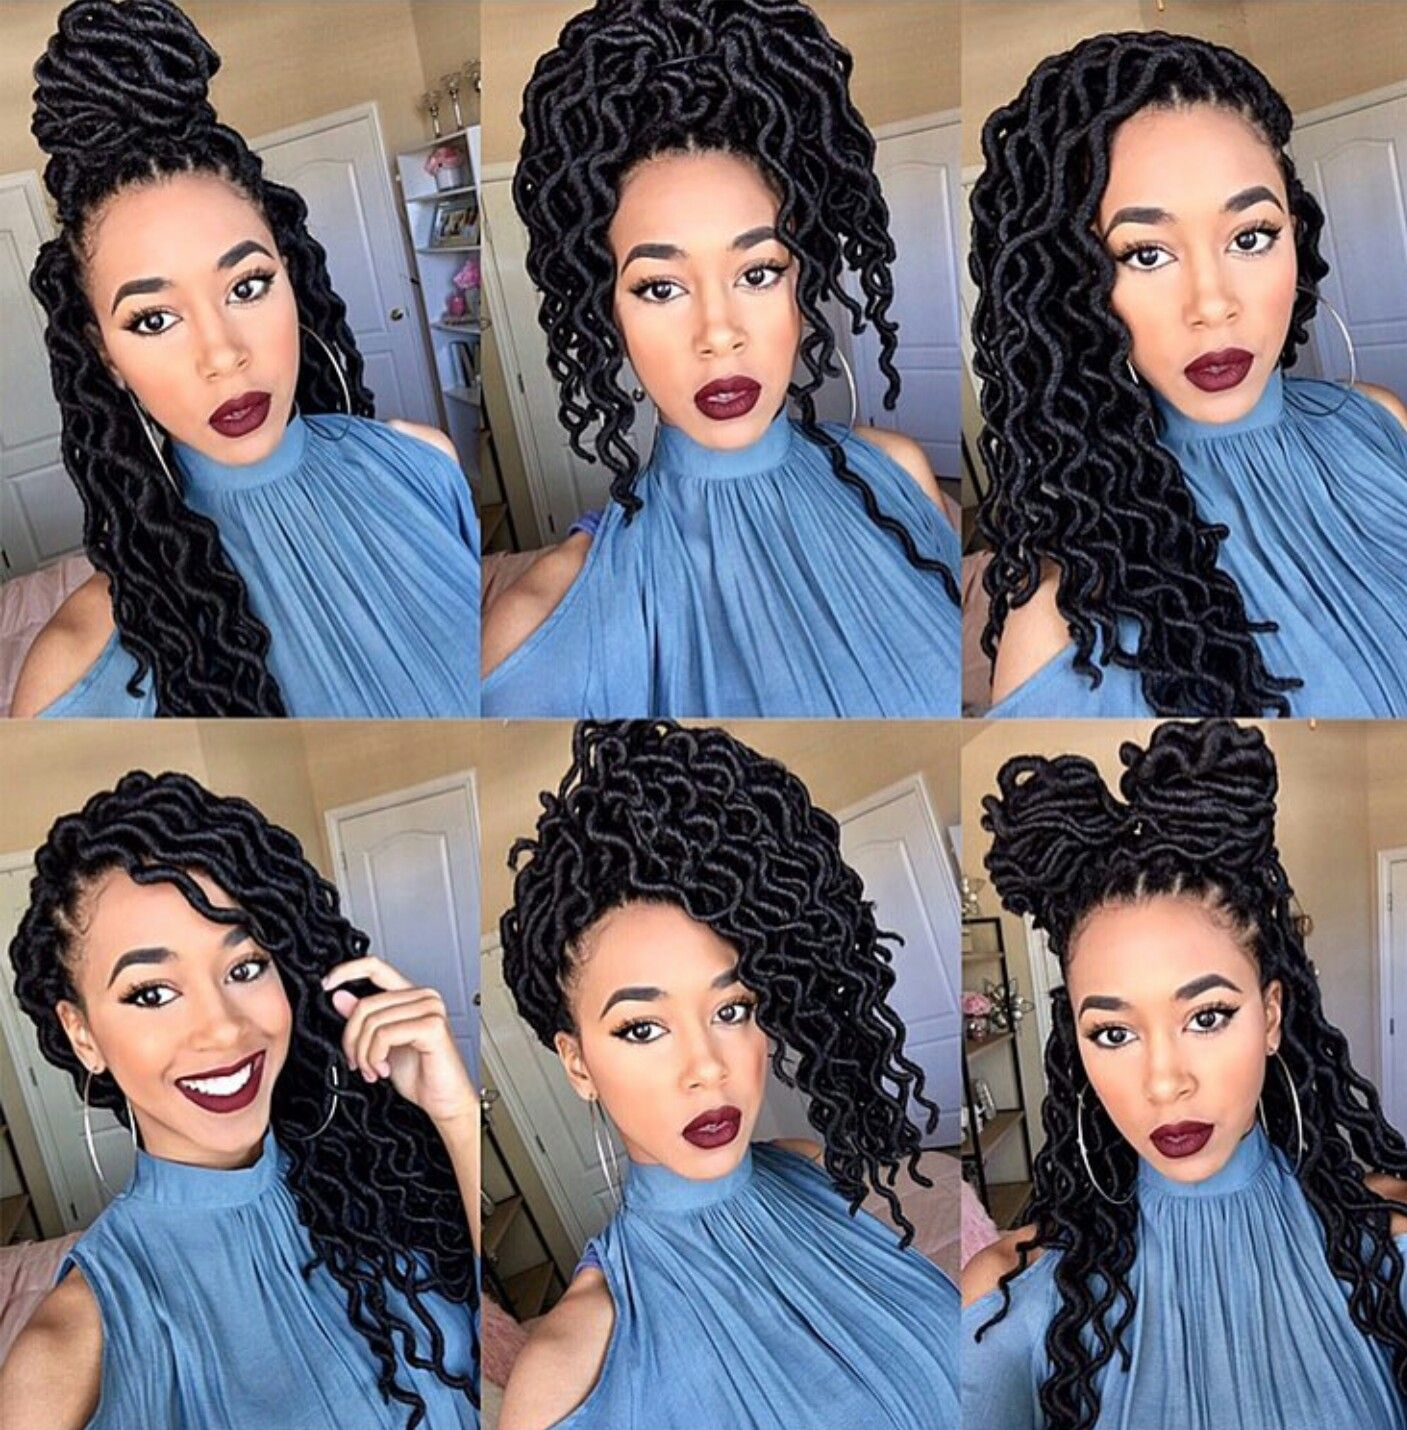 Faux Locs Hairstyles Endearing Faux Locs Faux Curly Locs  Hair Pinterest  Faux Locs Locs And